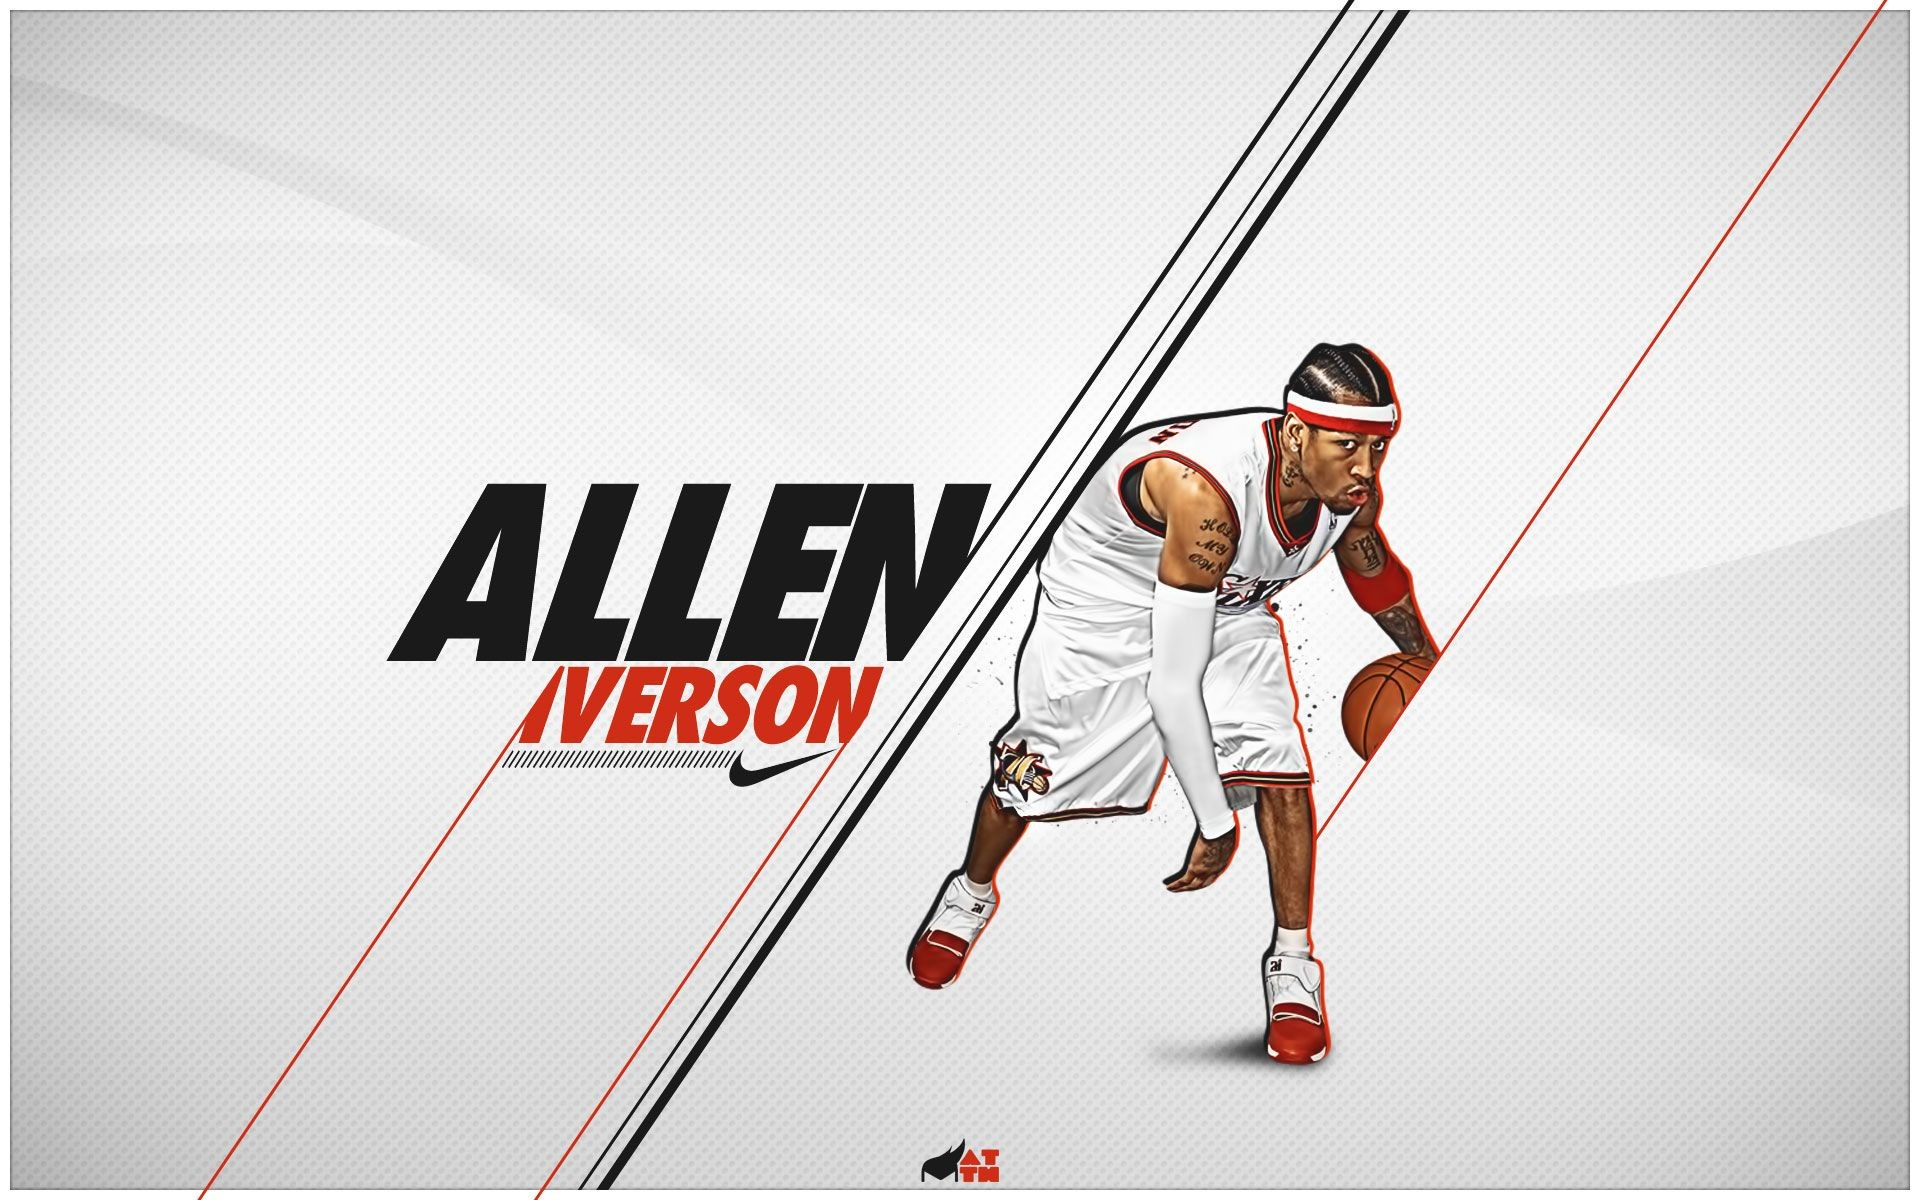 Allen Iverson Wallpaper Cartoon Zendha